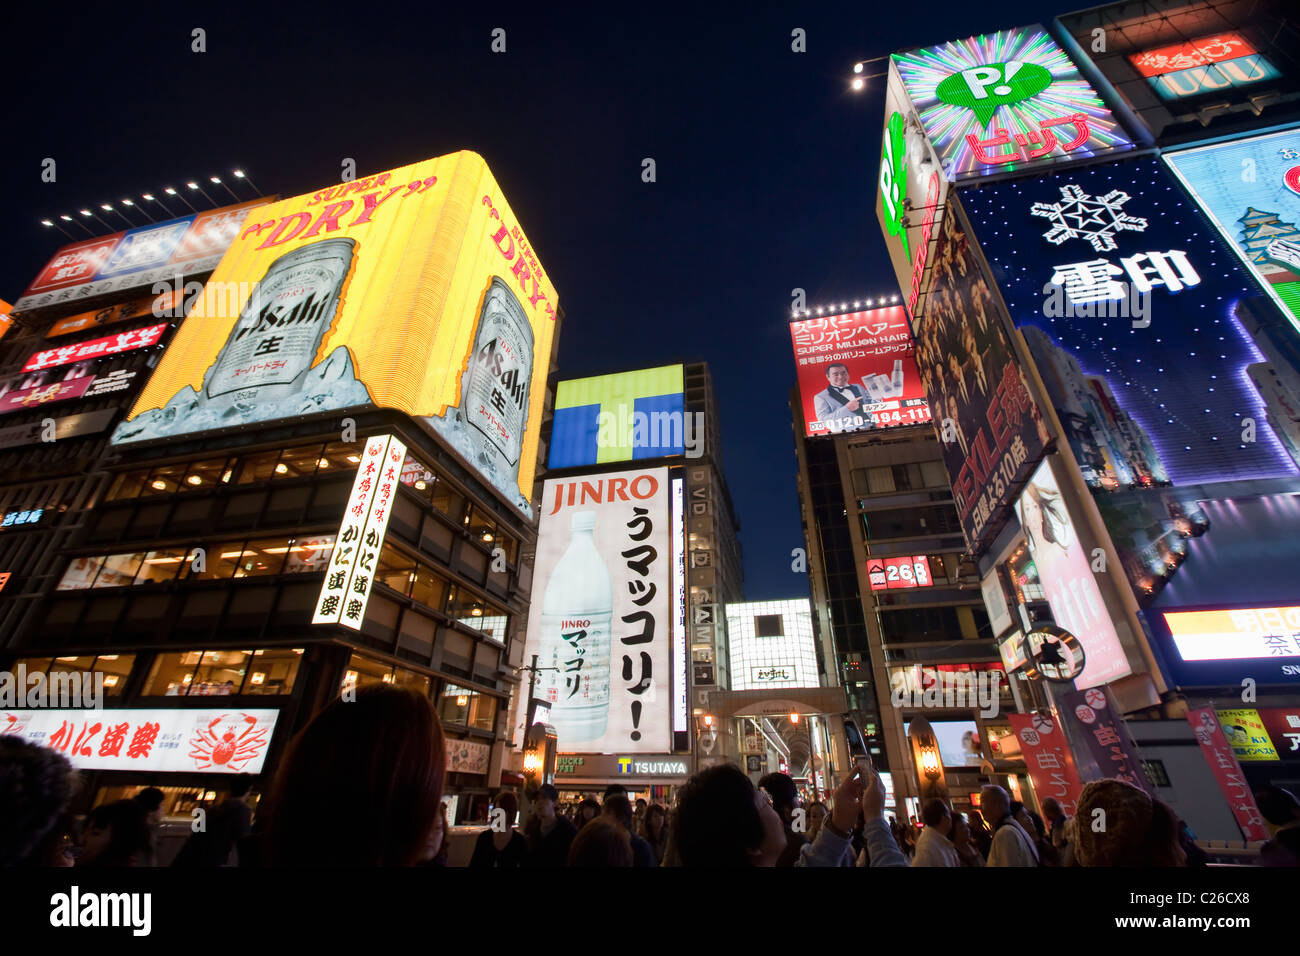 Bright neon lights of restaurants and clubs in Dotombori area at night in Osaka, Japan. - Stock Image